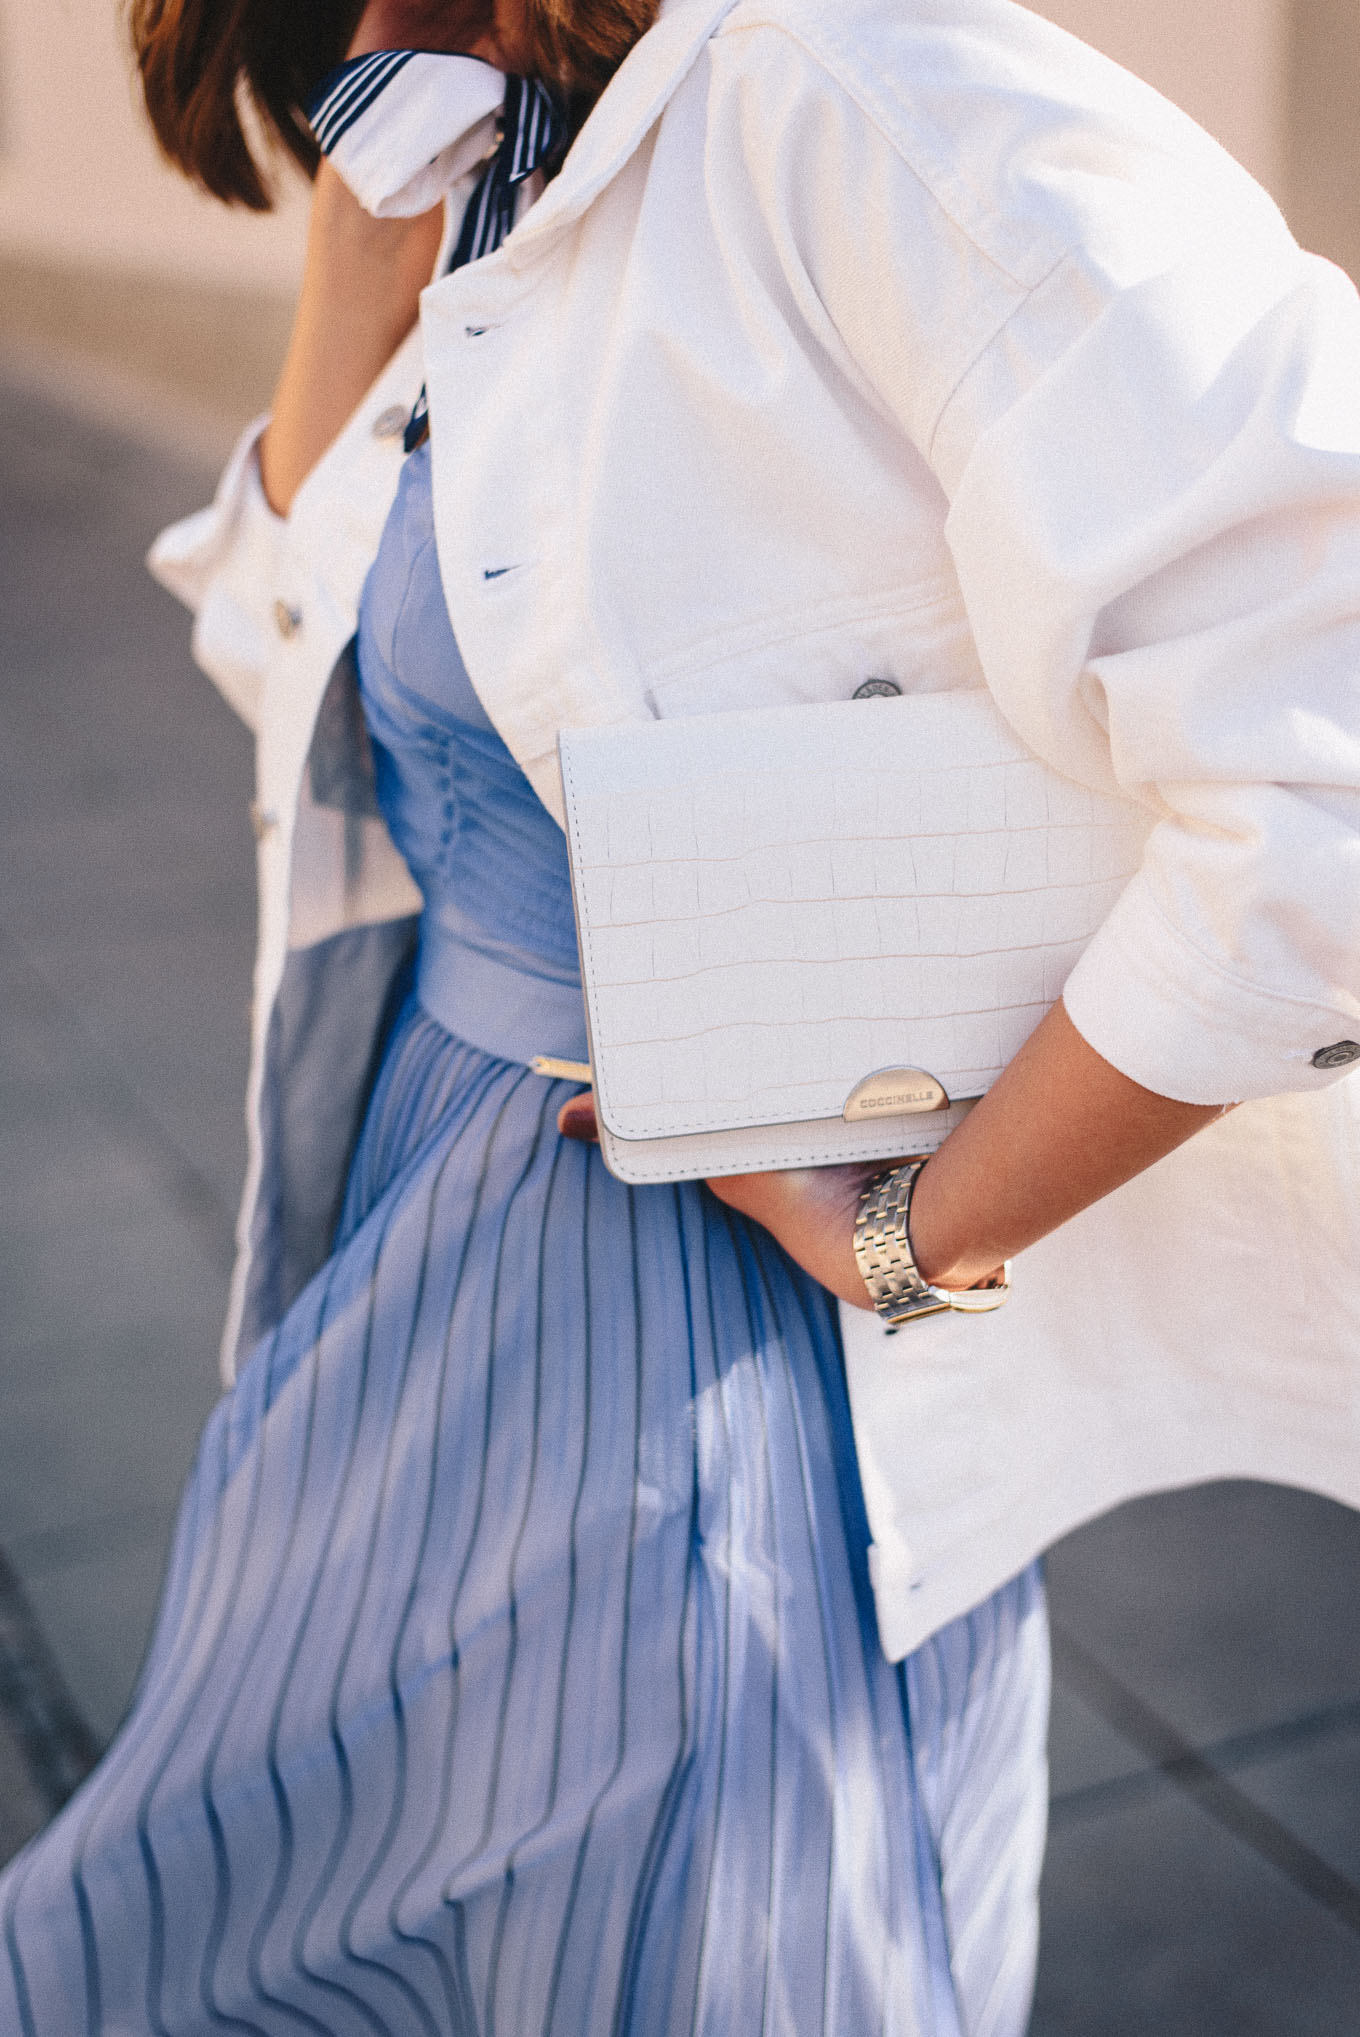 Details of outfit